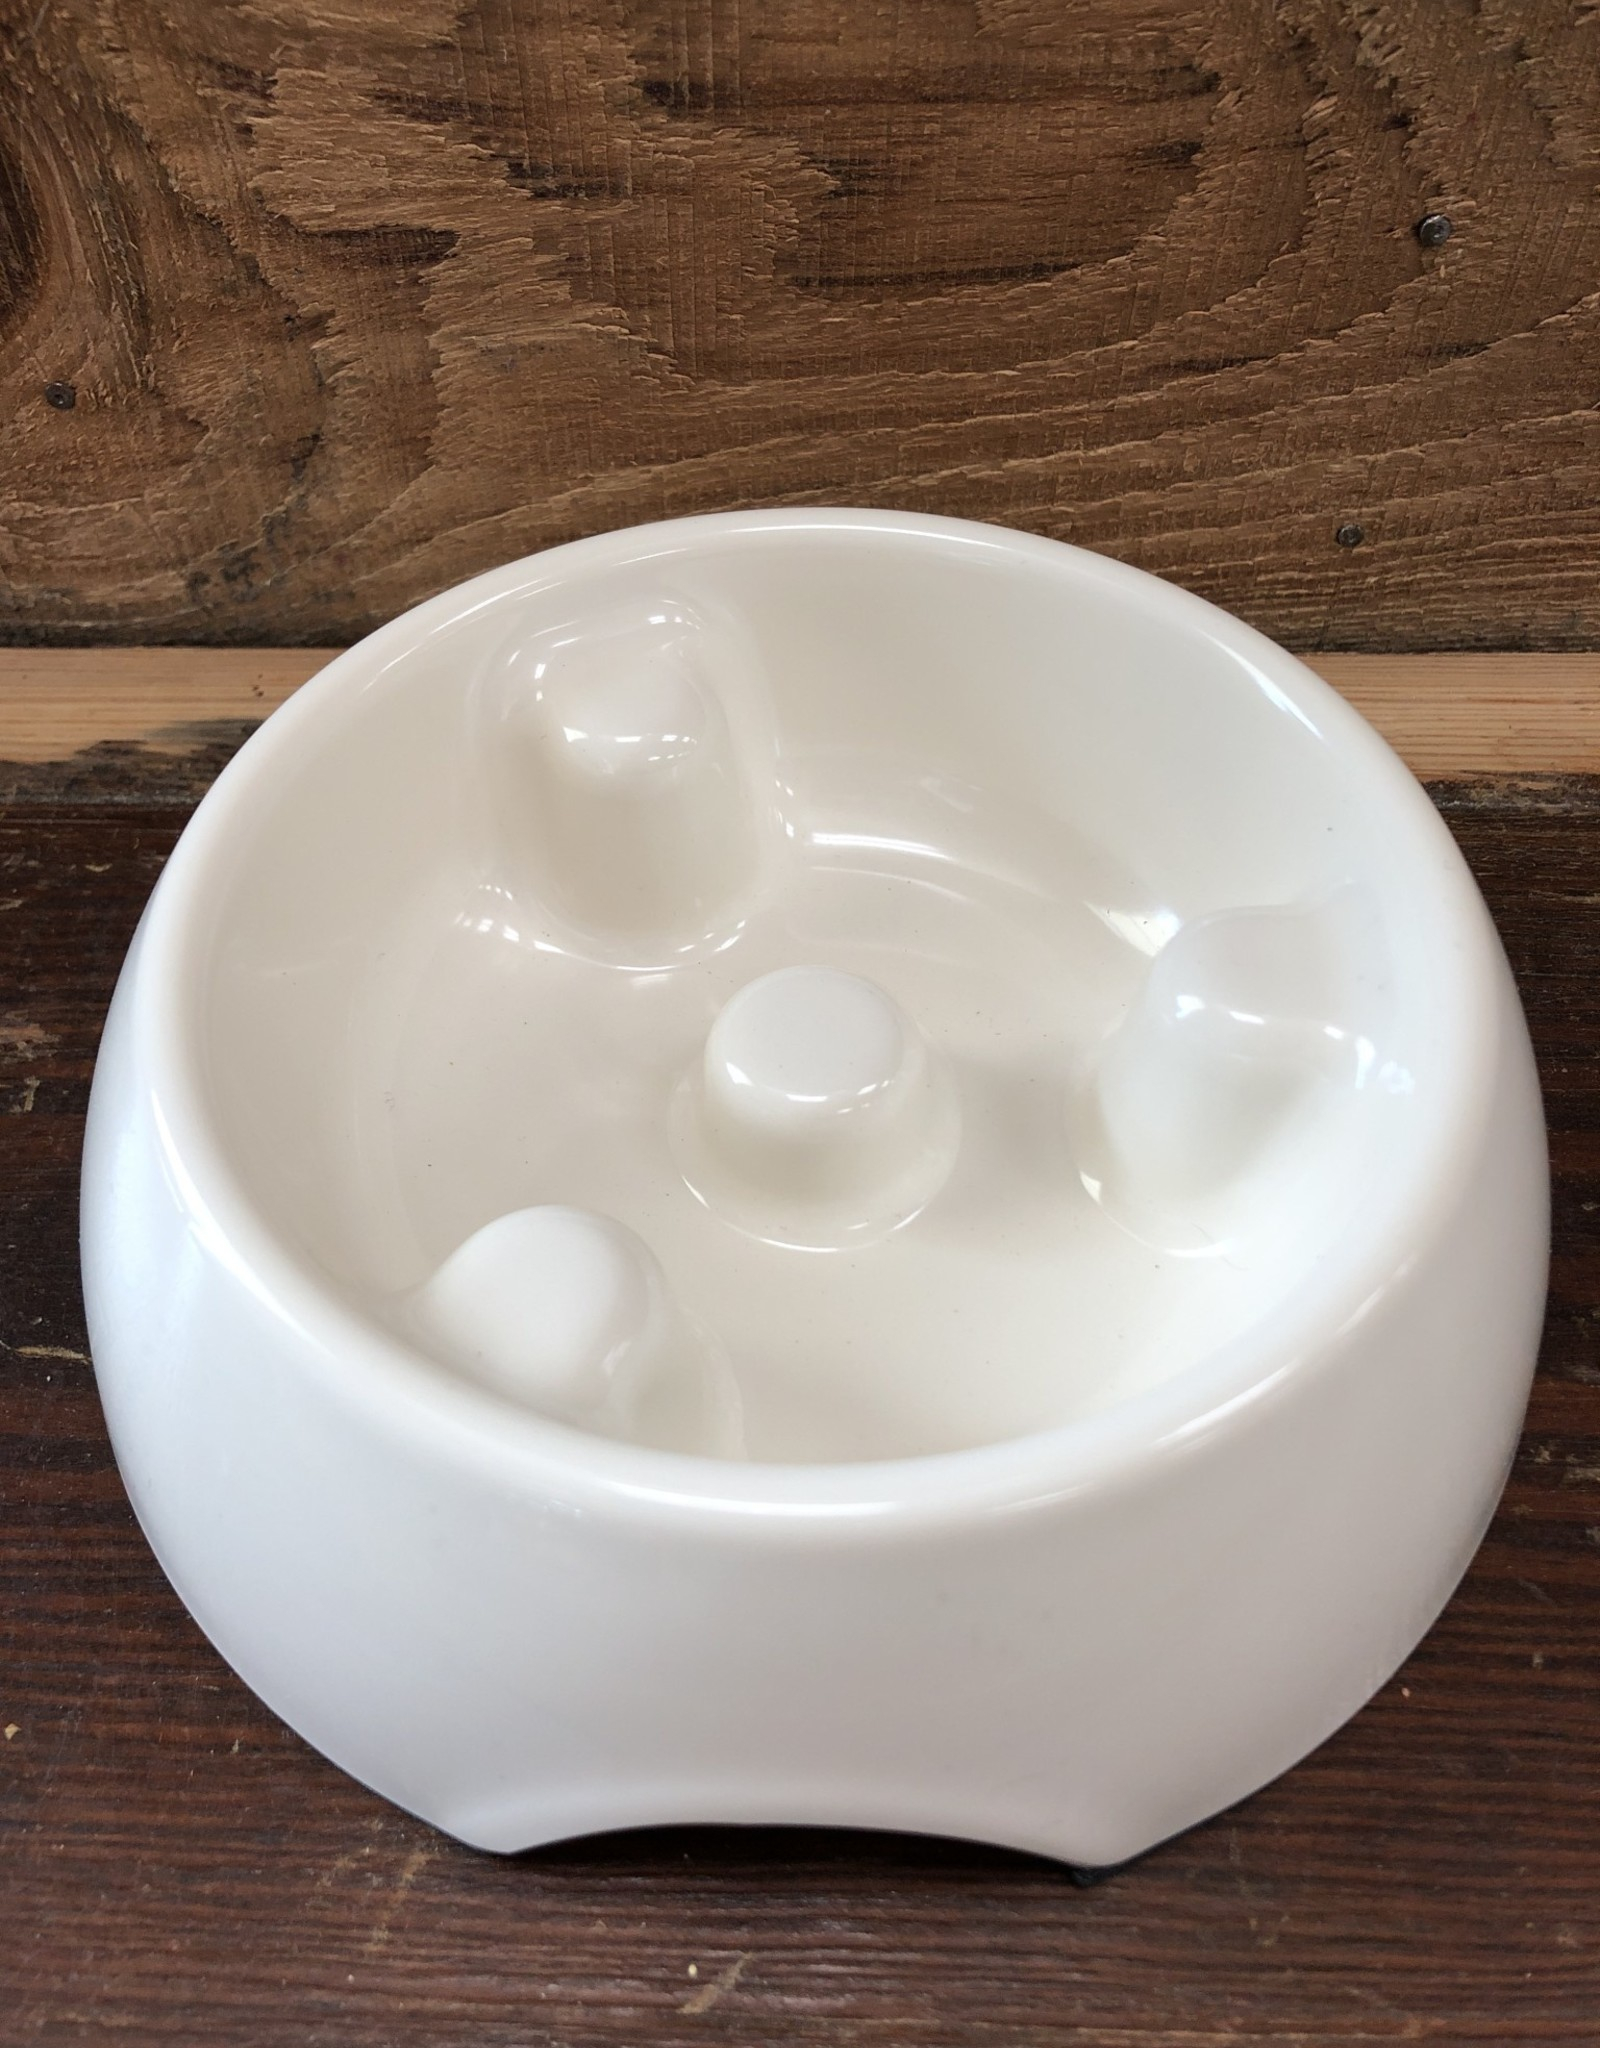 Hagen Dogit Go Slow Anti-Gulping Bowl, White, X-Small